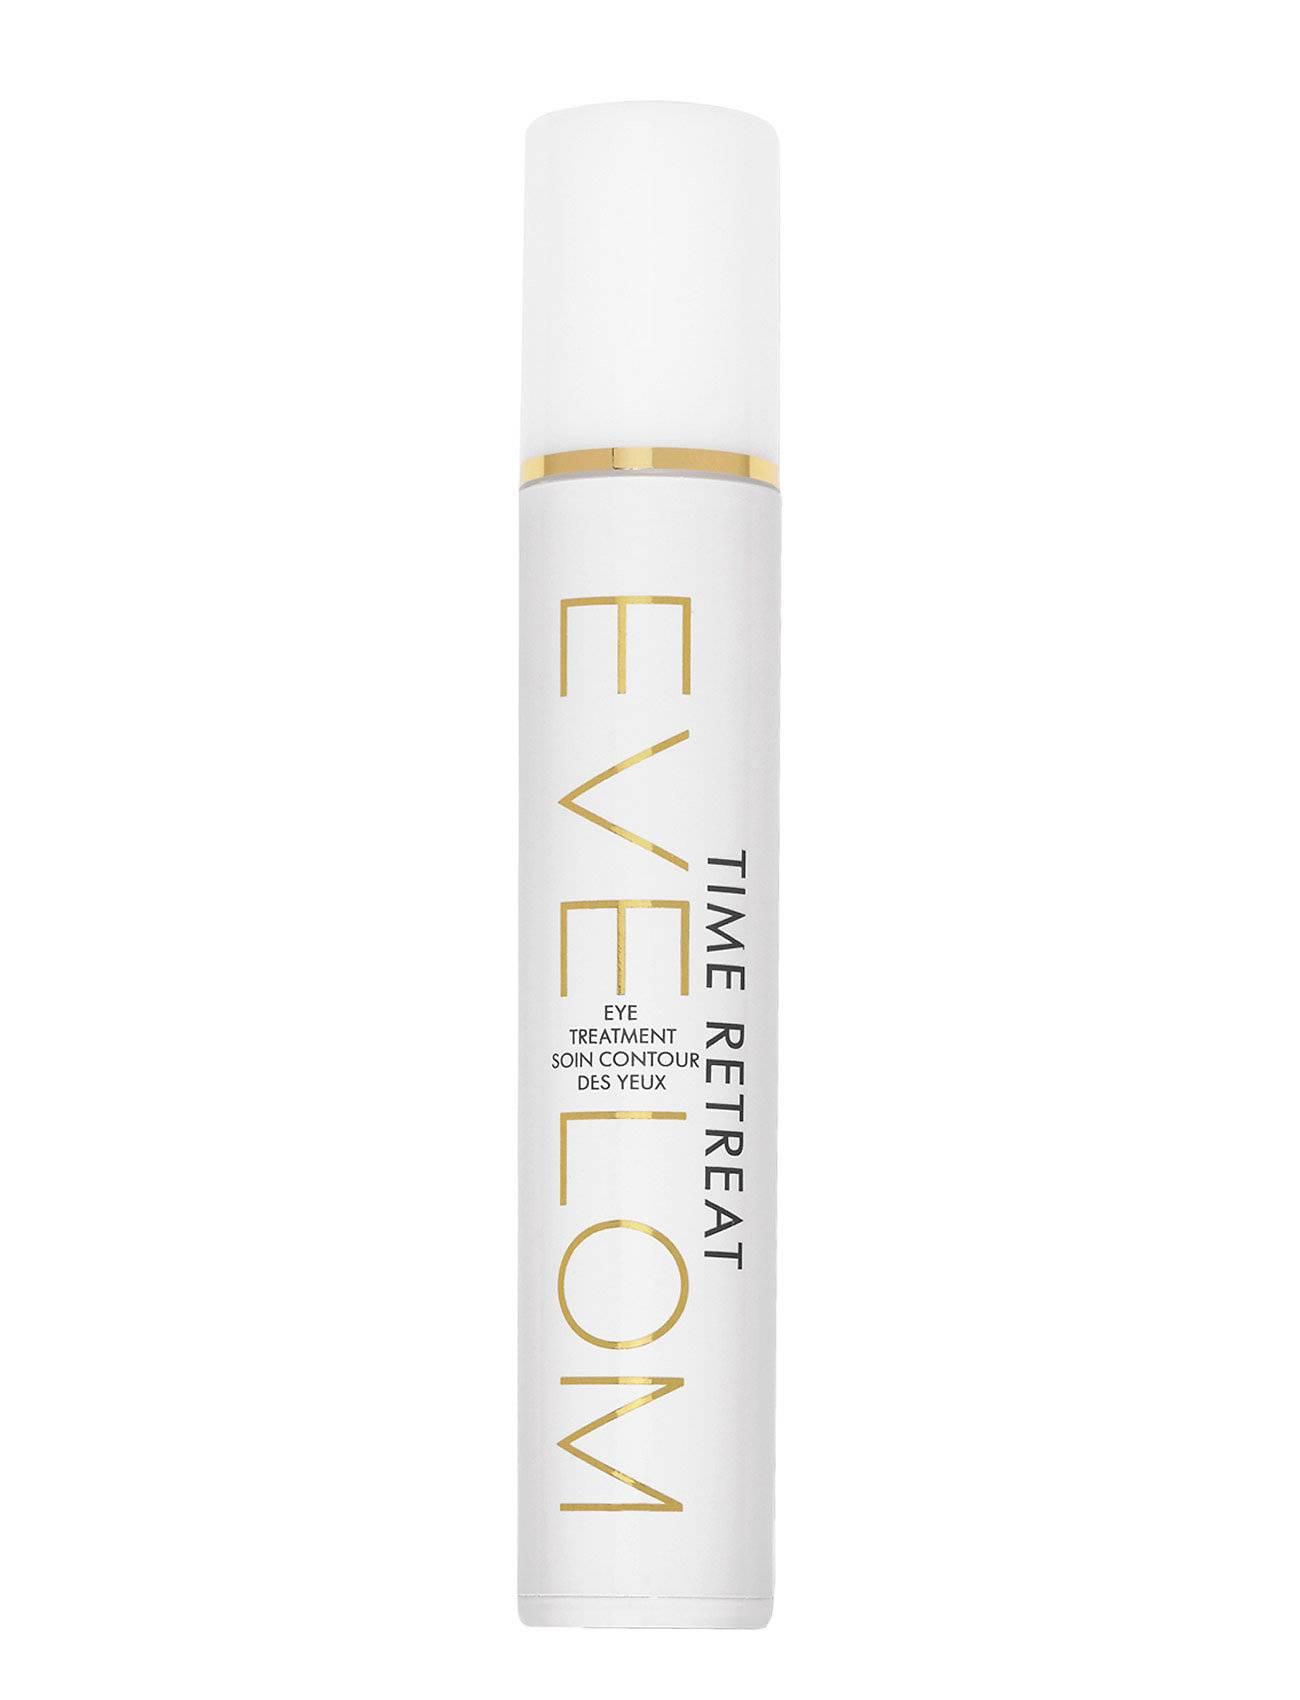 EVE LOM Time Retreat Eye Treatment